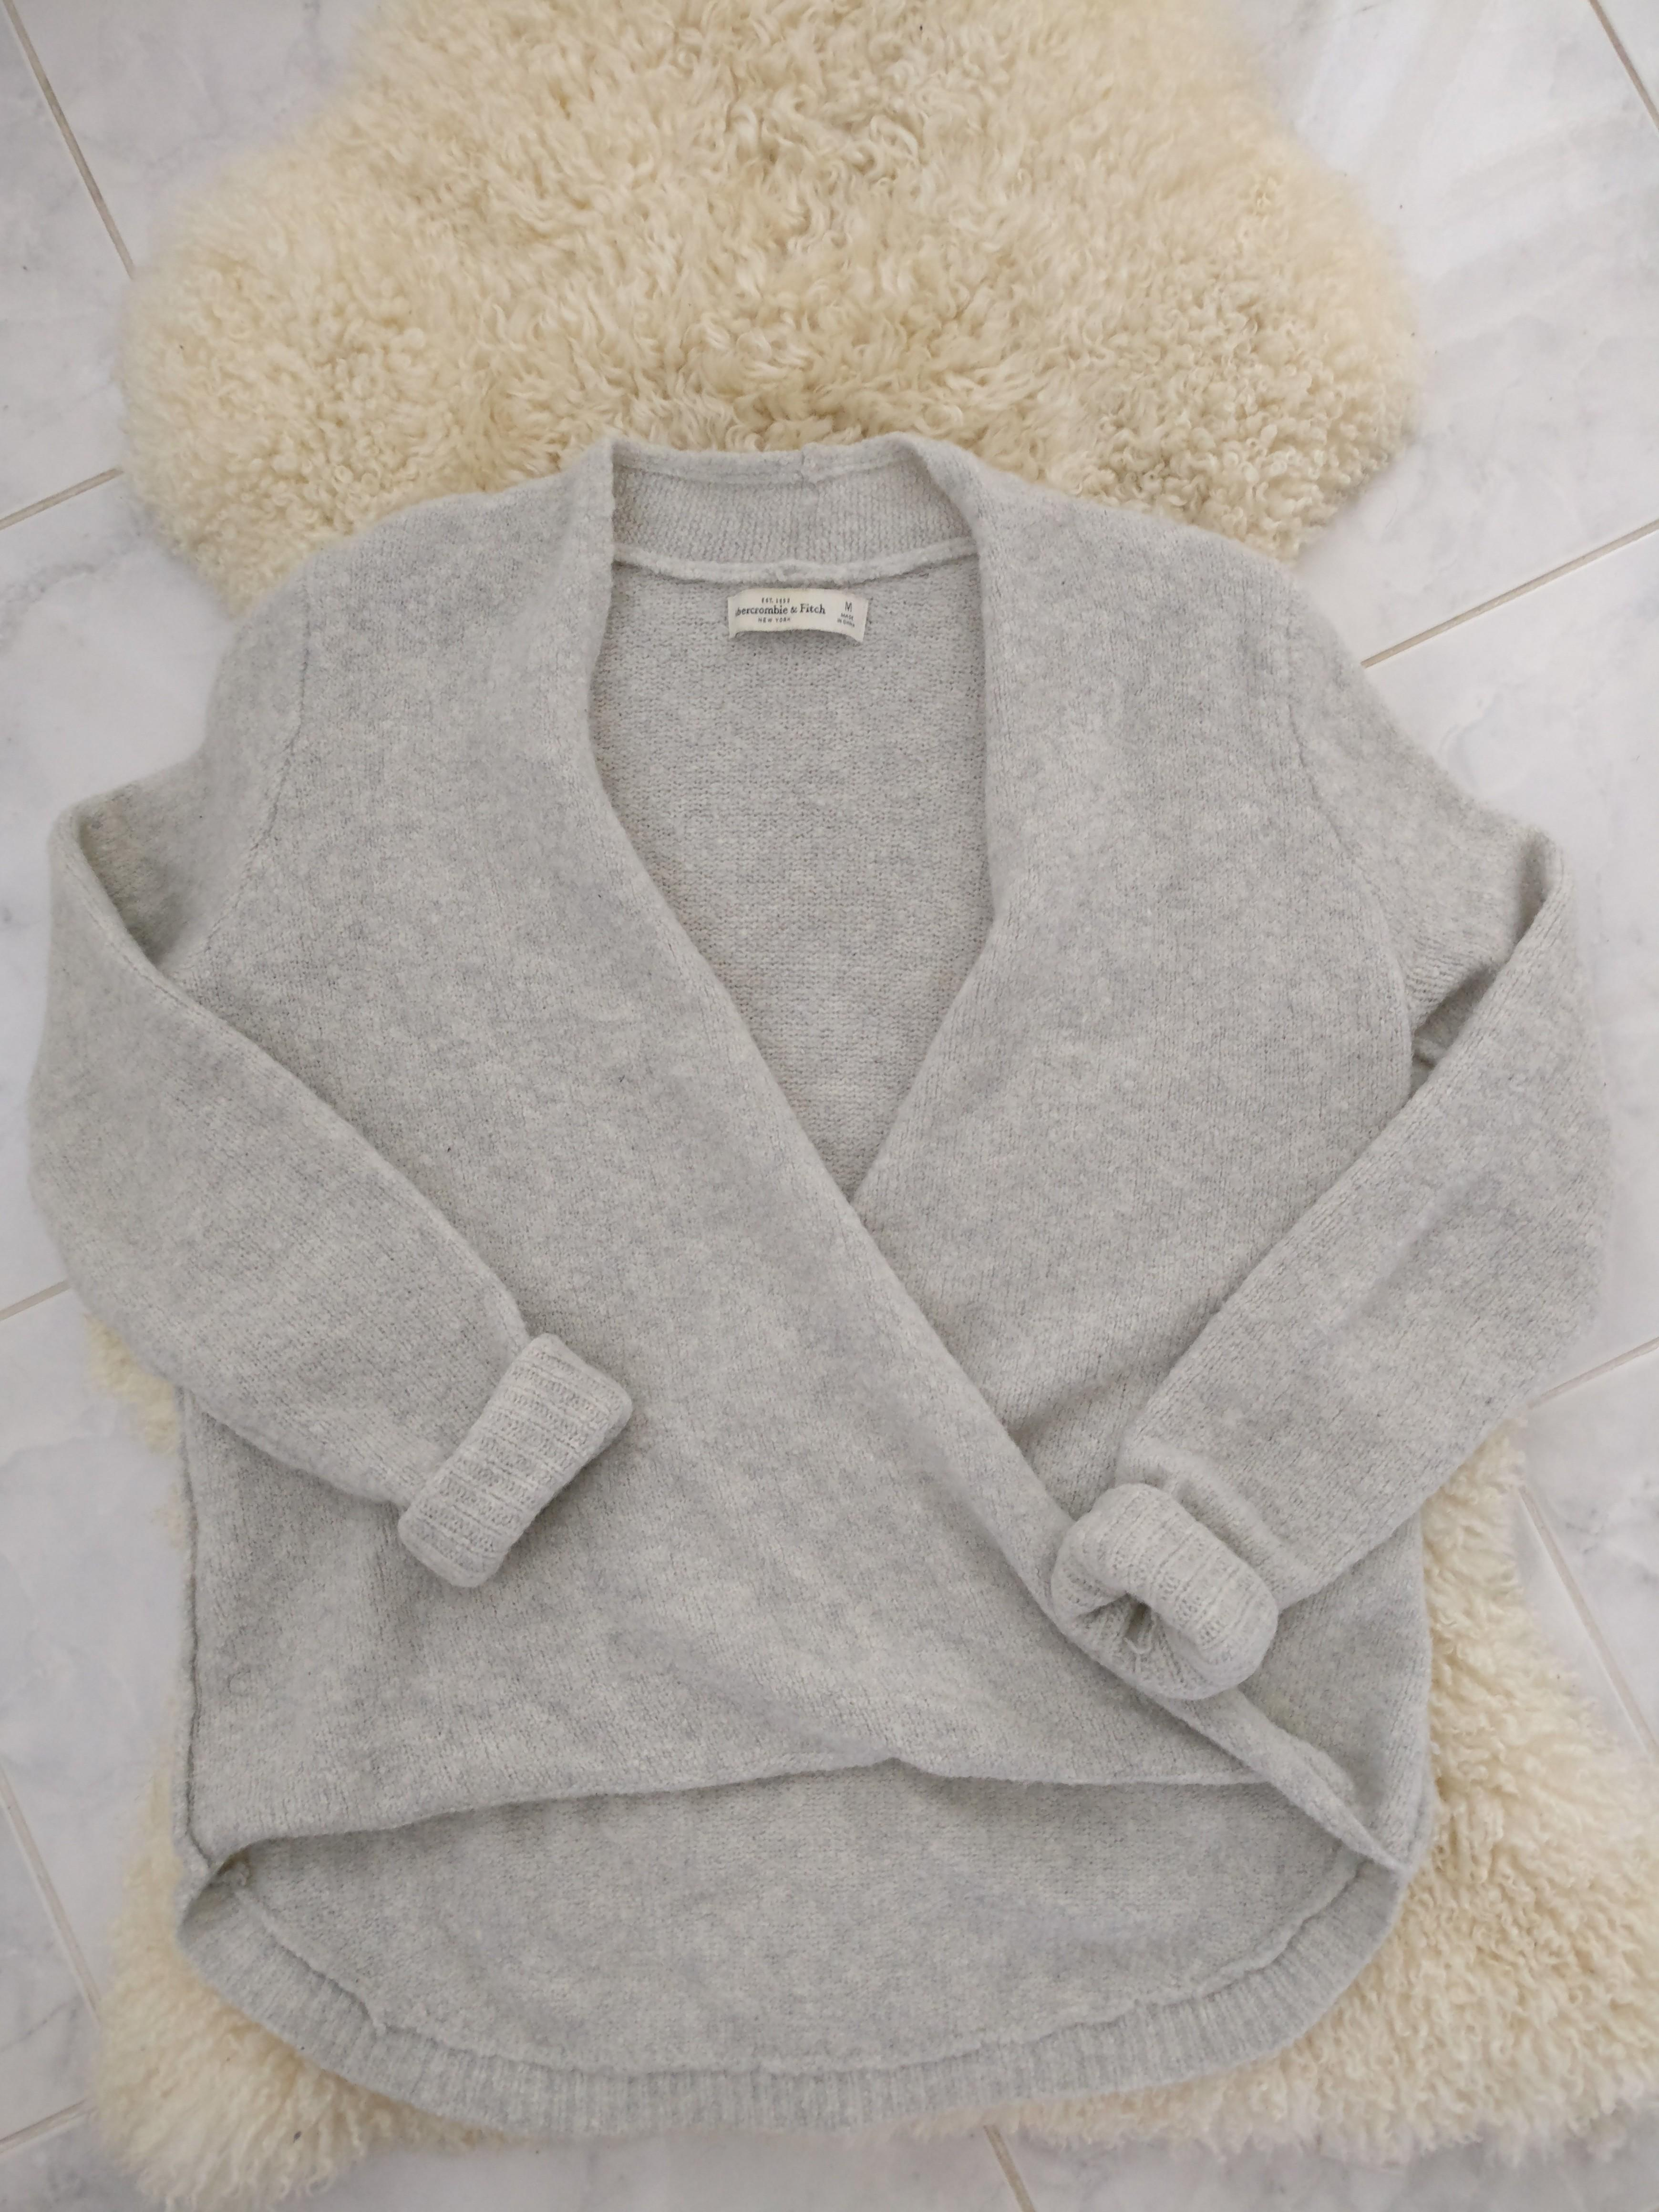 Cozy A&F Long sleeve with soft-textured material, Size Medium